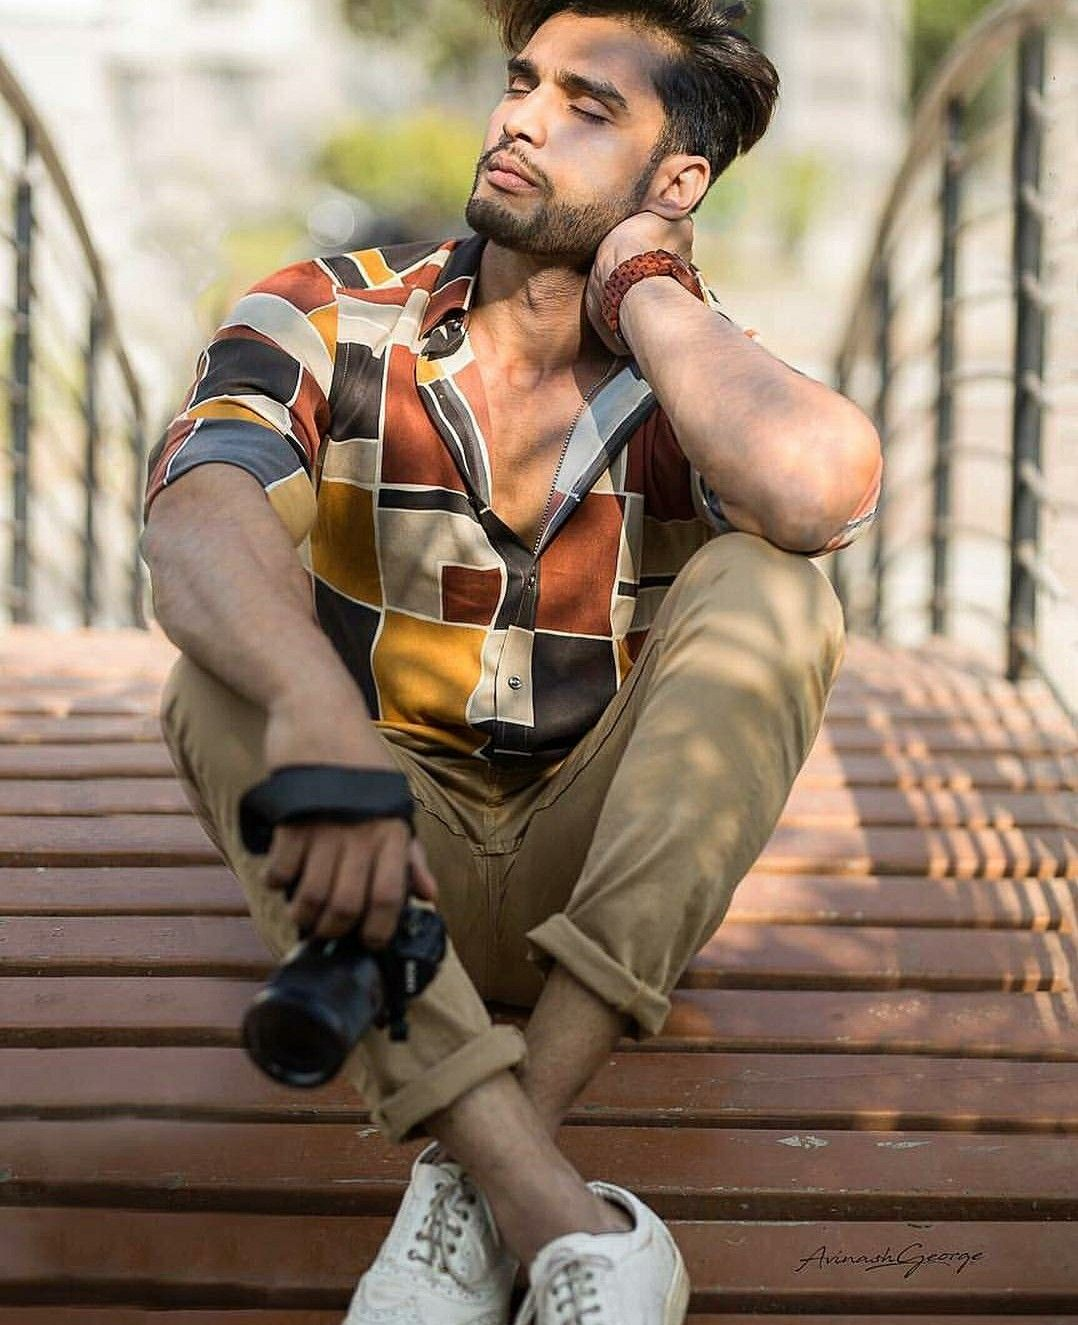 Summer Swag Photography Poses For Men Best Poses For Men Mens Photoshoot Poses